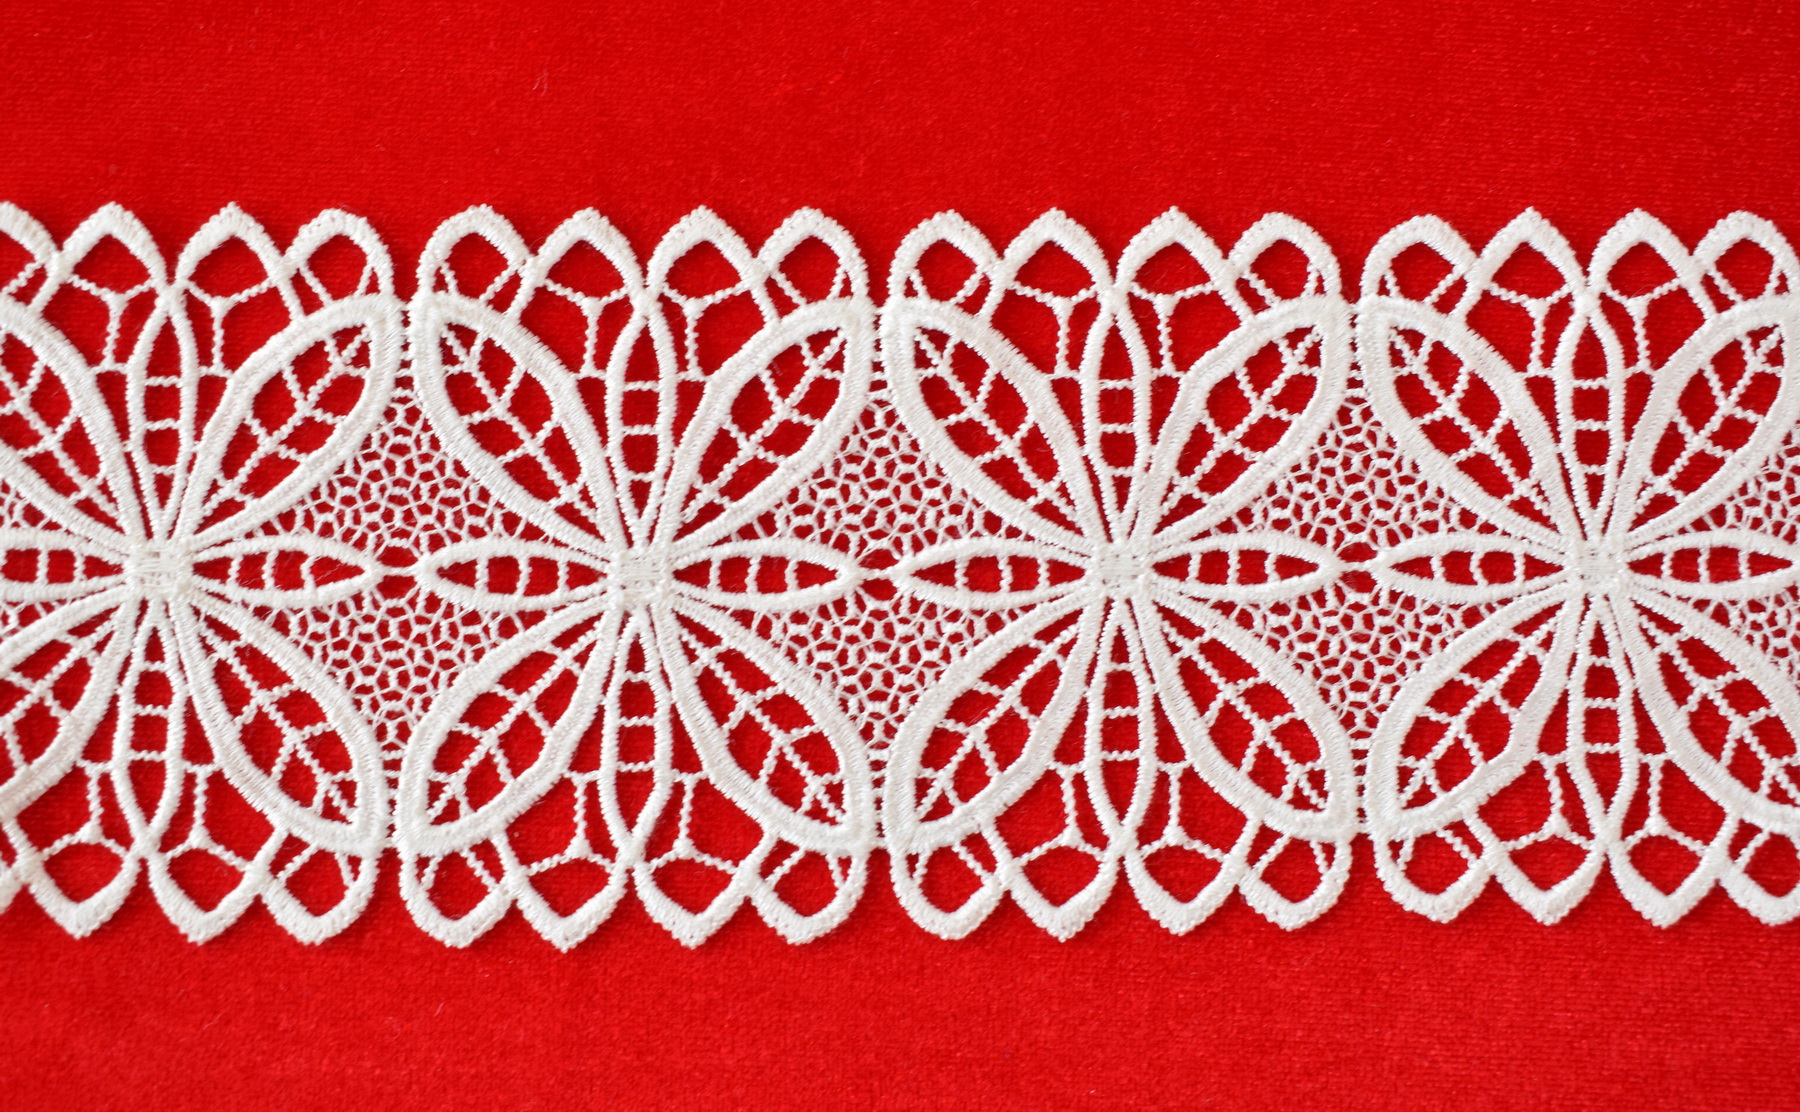 Lace: Not embroidered «67547-8»